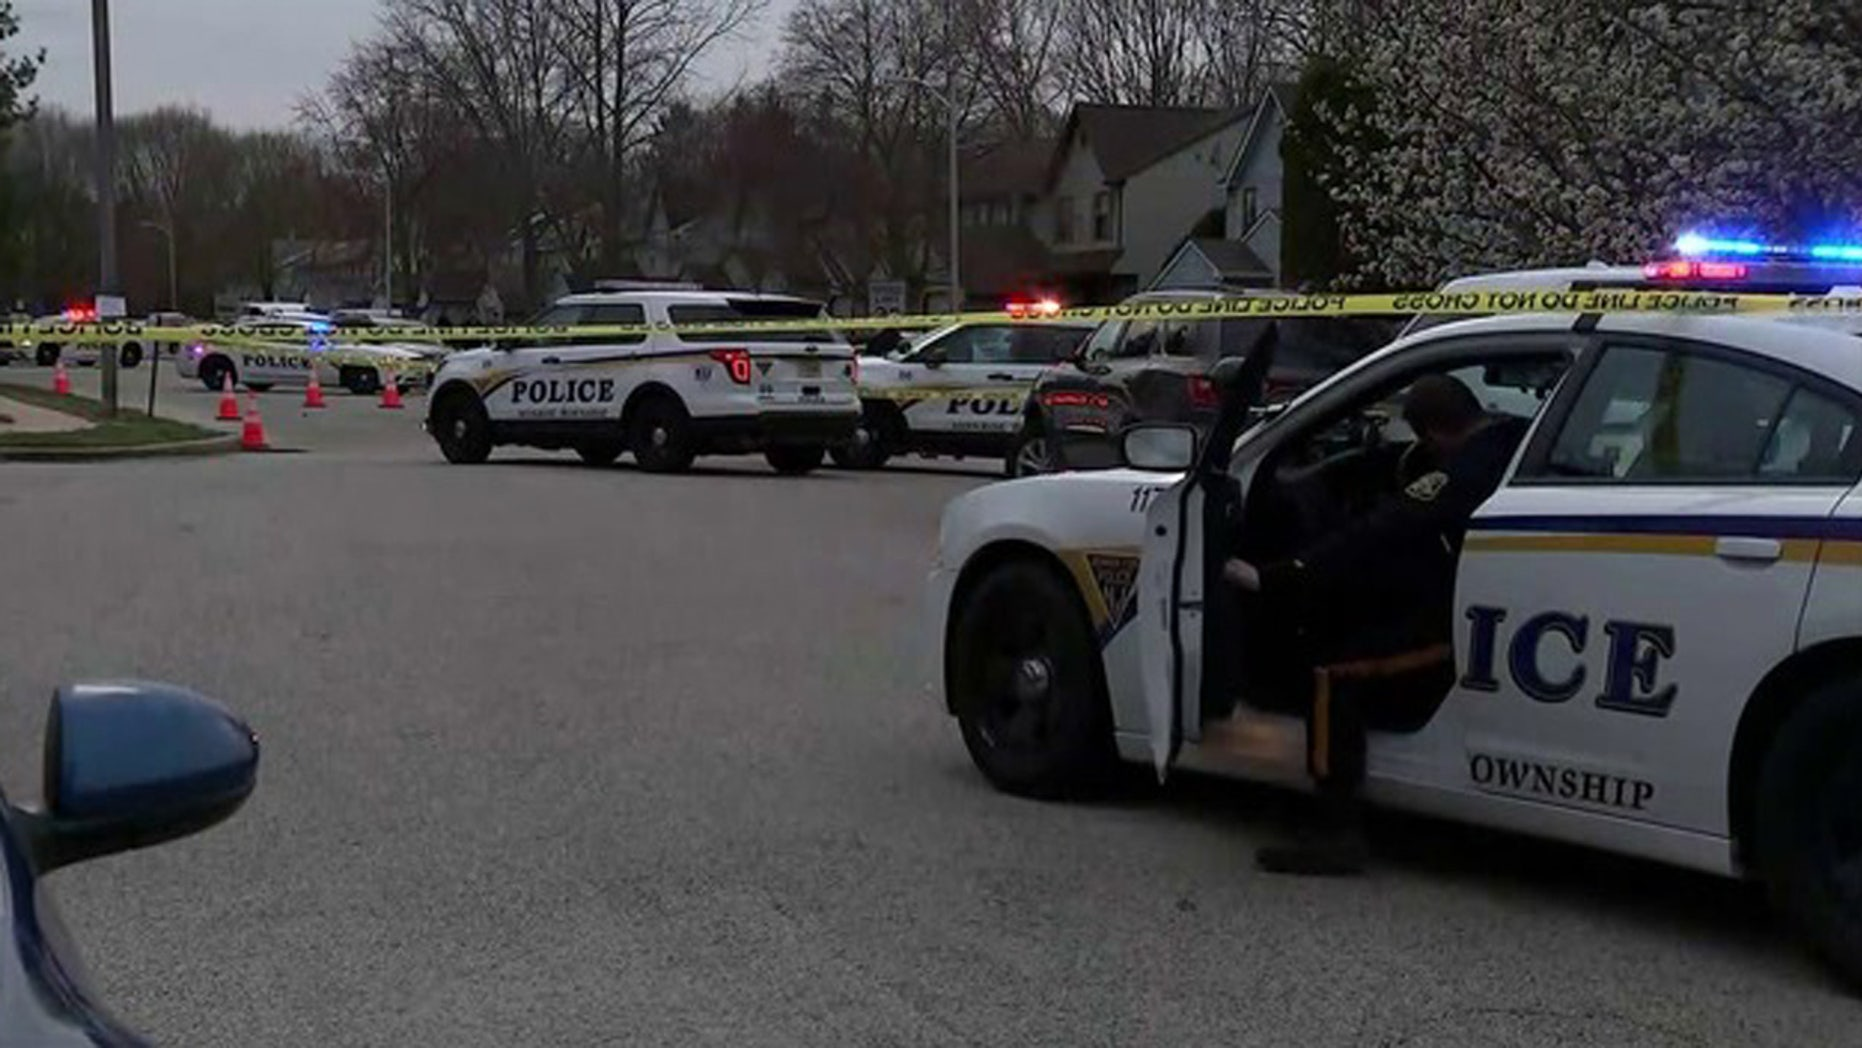 According to officials, a man was killed Sunday in parachuting in southern New Jersey.